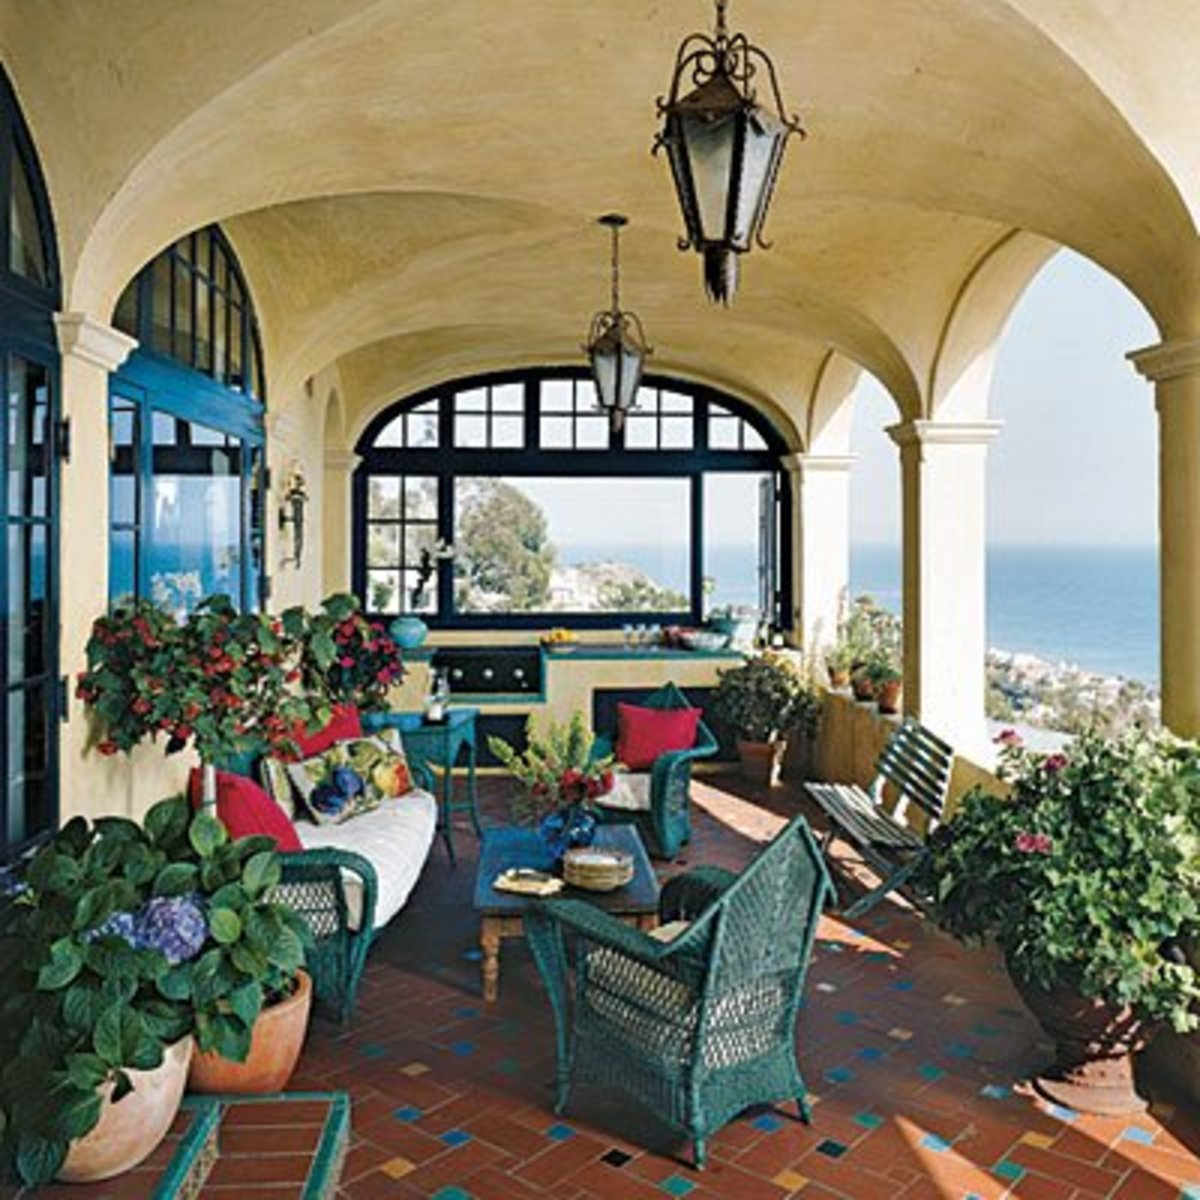 Mediterranean Decorating Styles: Mediterranean Patios, Pergolas, Stucco Terraces, Water